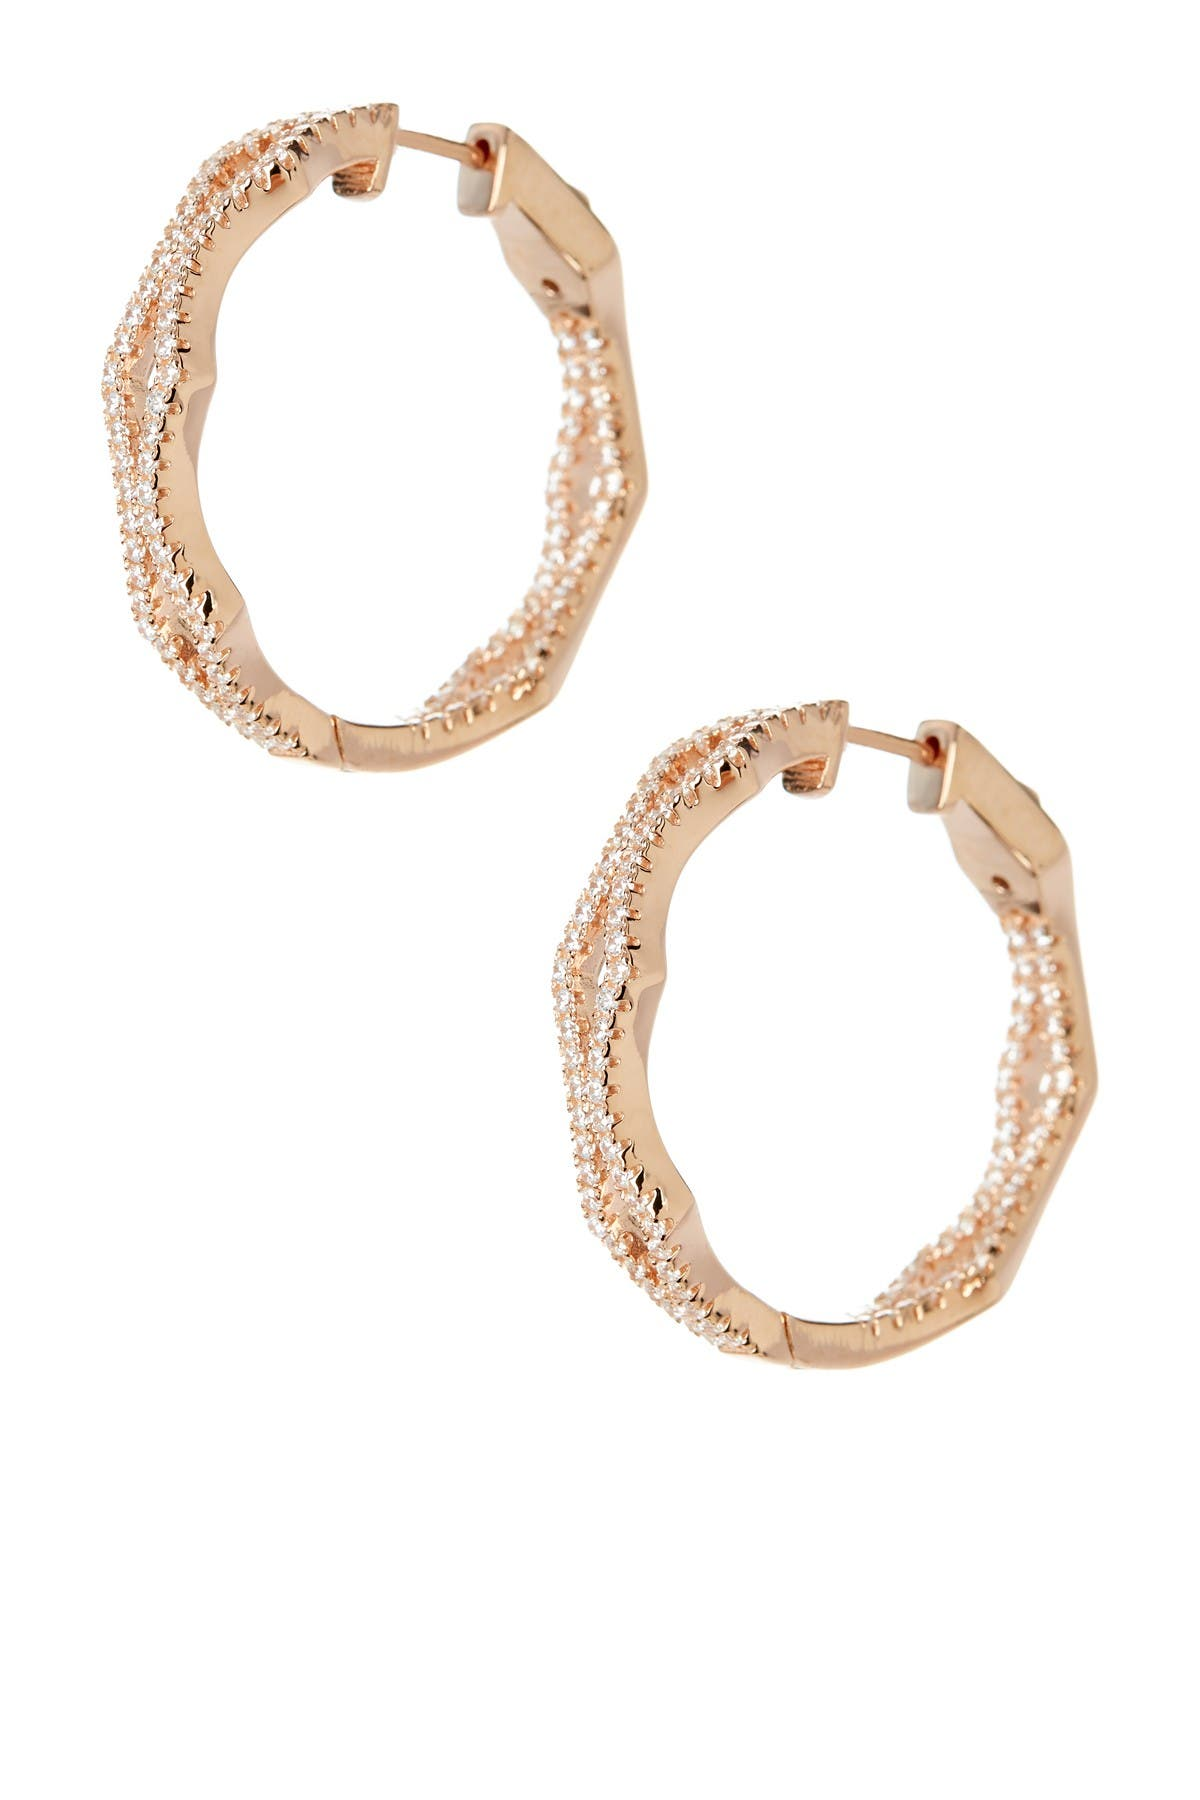 Image of Suzy Levian 14K Rose Gold Plated Sterling Silver Pave CZ 29mm Hoop Earrings